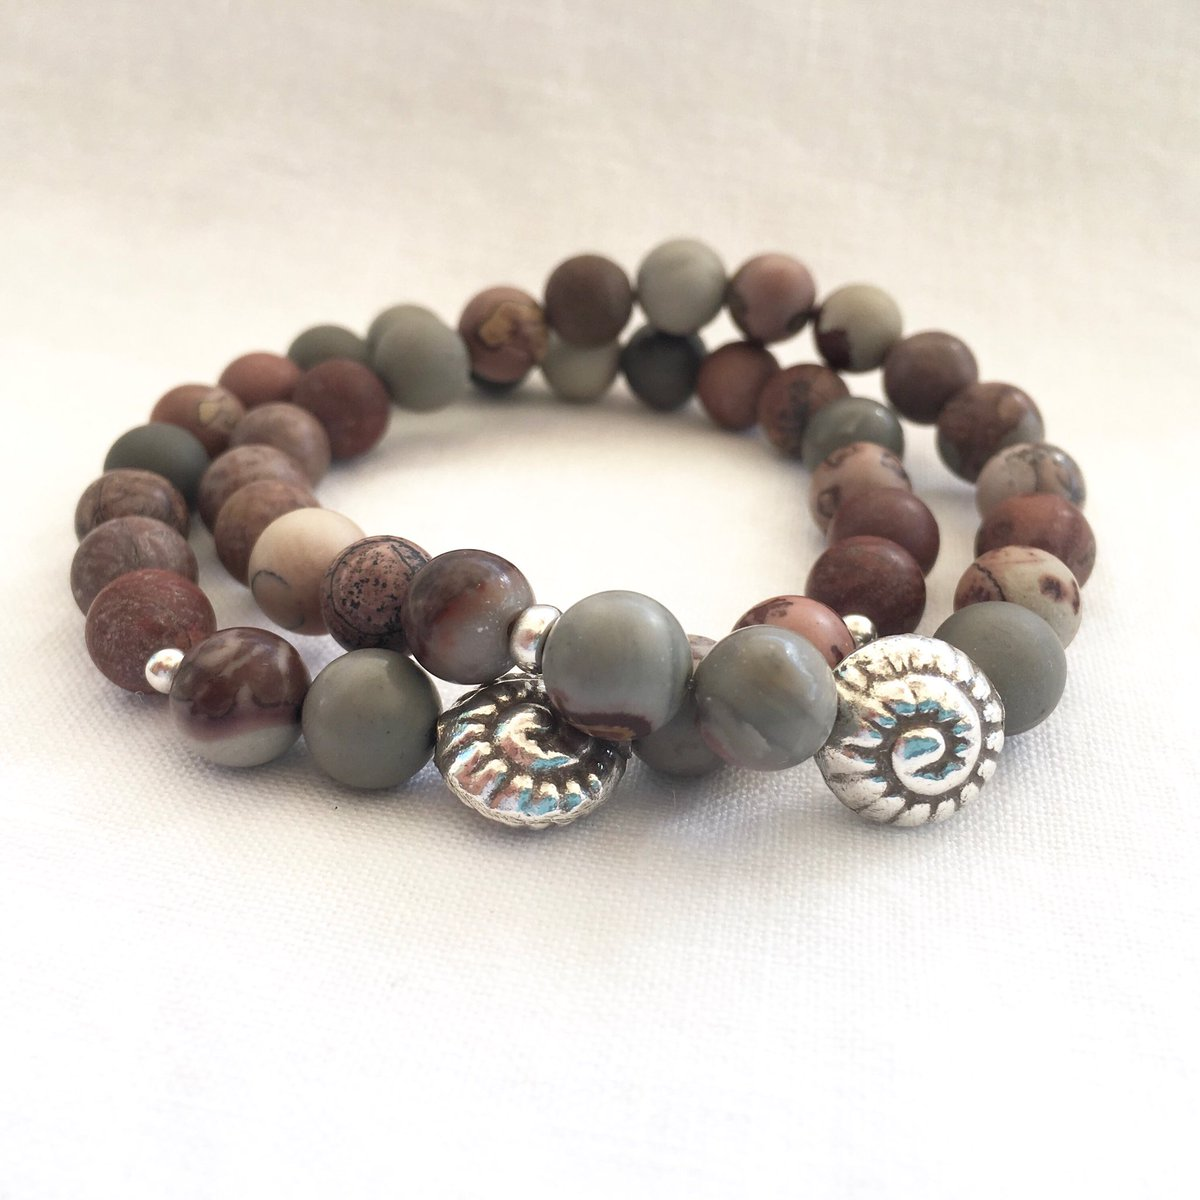 Happy to share a favorite from my #etsy shop: Artistic Jasper Fine Silver Nautilus Shell And Sterling Silver Accent Beads, Mens Nautical Marine Biologists Gift, Boyfriend, Unisex Ideas  https:// etsy.me/2PKCve6    <br>http://pic.twitter.com/K4UuOFN0L0